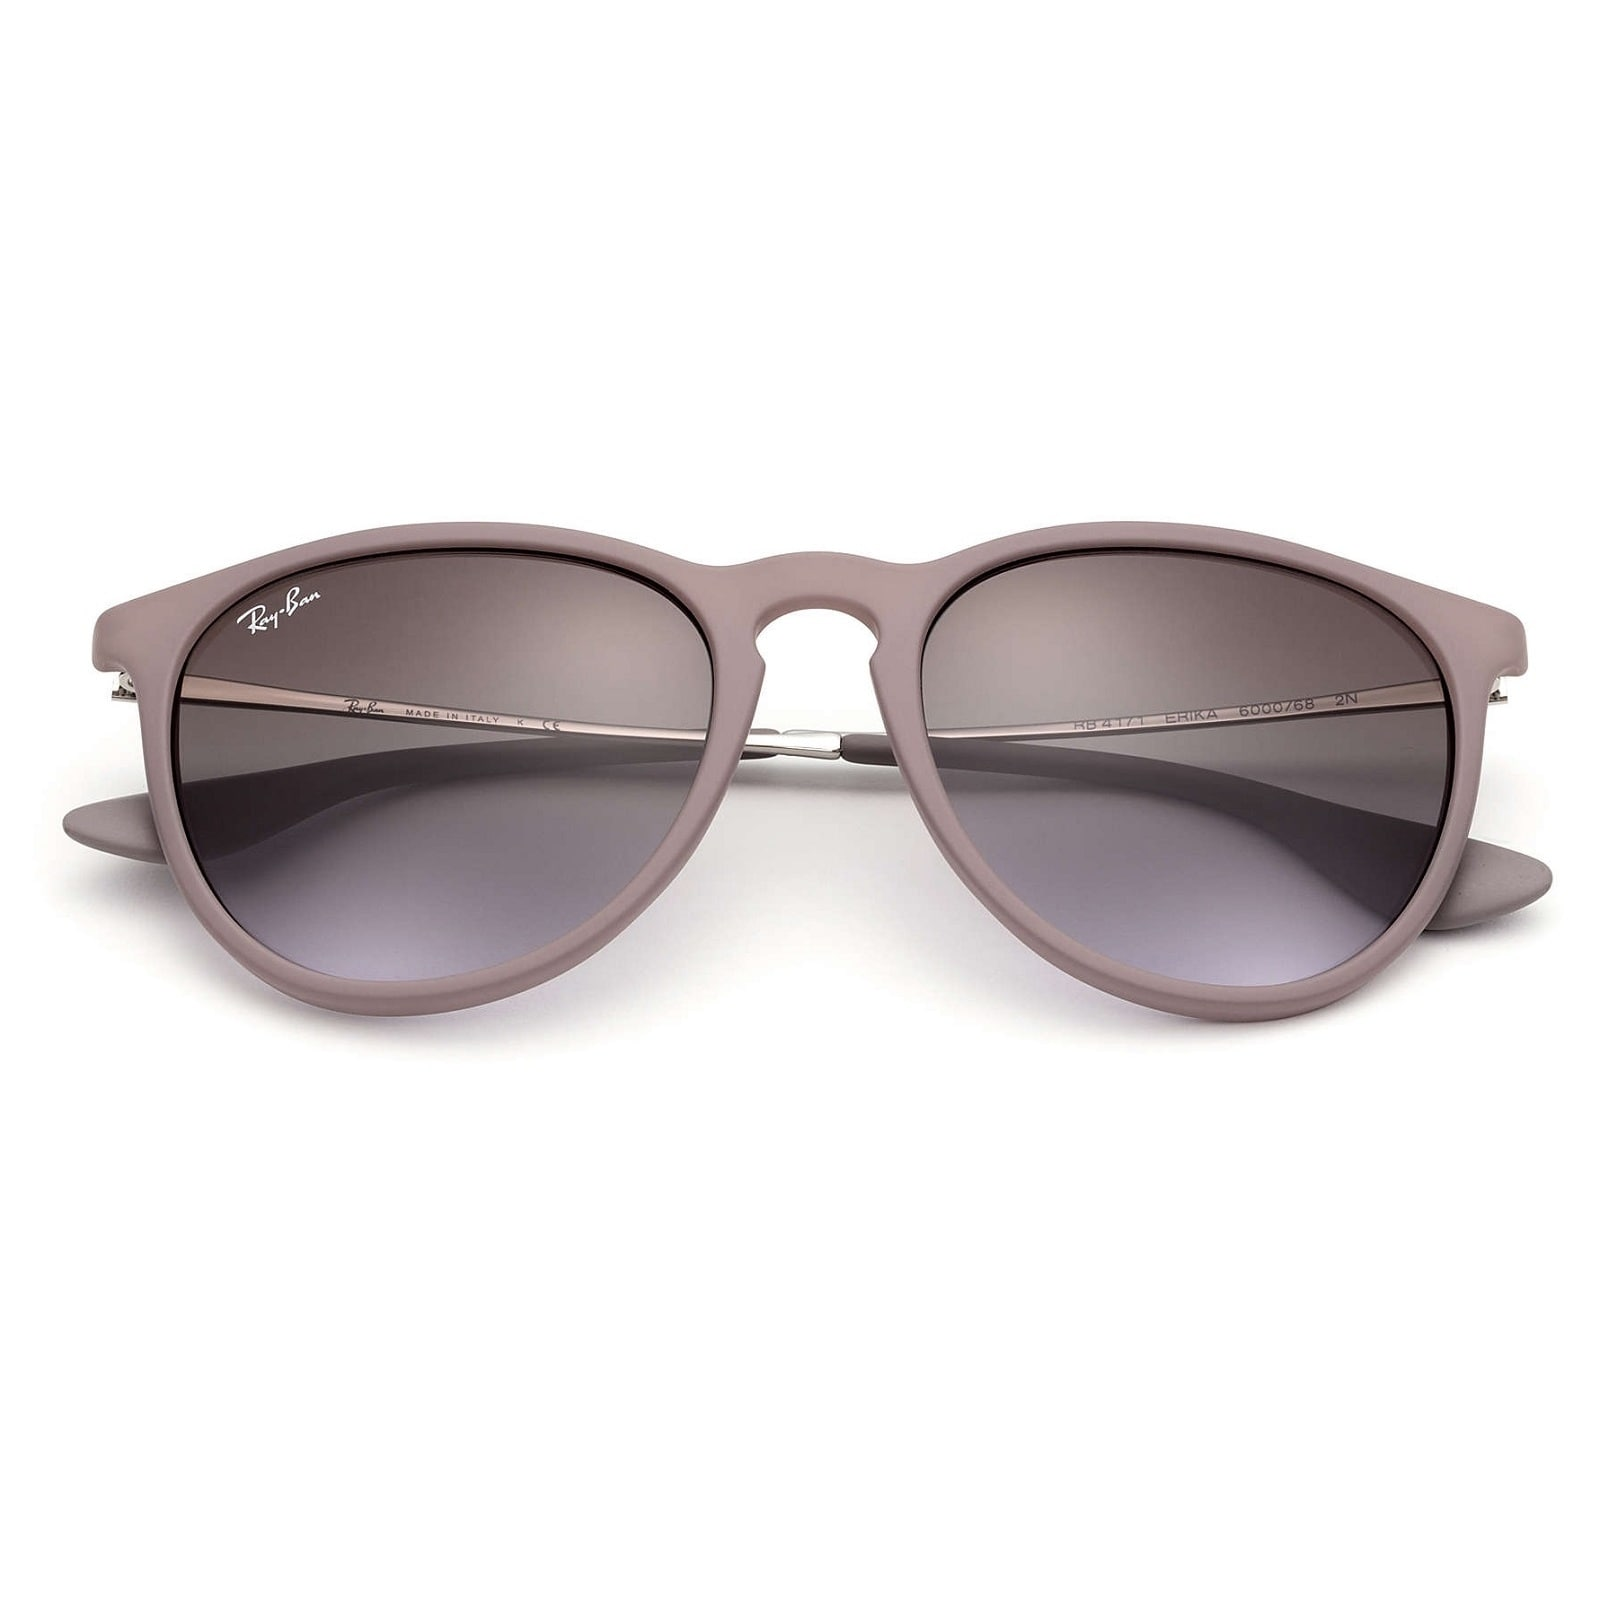 d38d97a50d9 Shop Ray-Ban Erika RB4171 Women s Brown Silver Frame Brown Violet Gradient  54mm Lens Sunglasses - Free Shipping Today - Overstock - 15299145